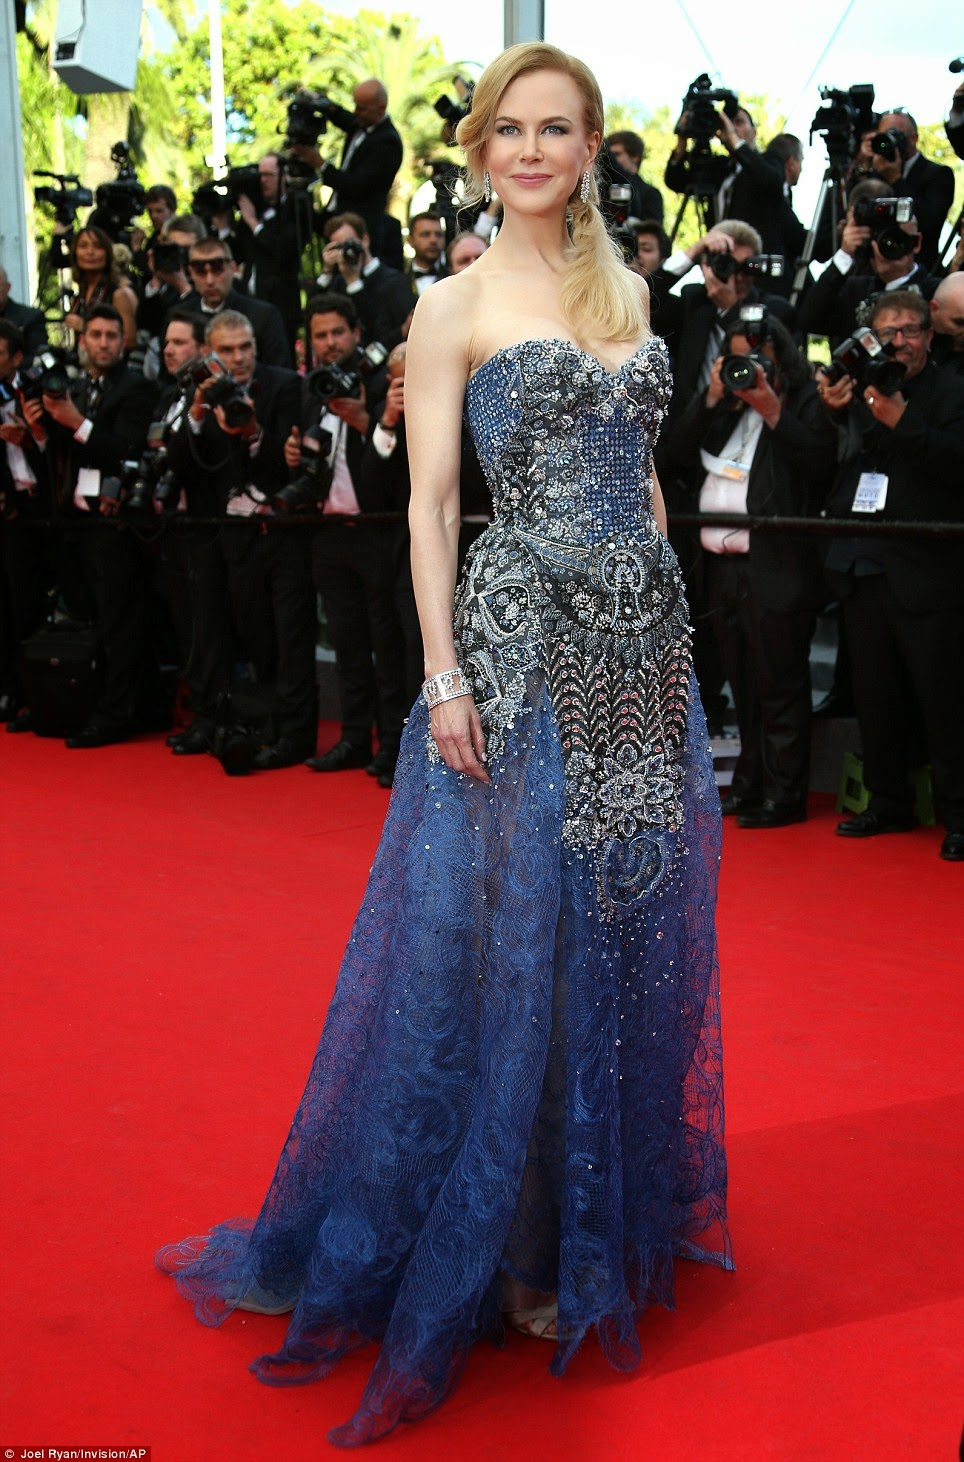 Nicole Kidman in Armani Prive, Cannes Film Festival 2014, Cannes fashion, Redcarpet Fashion 2014, Celebrity Fashion, Pakistan Fashion Blog, Top Trends 2014